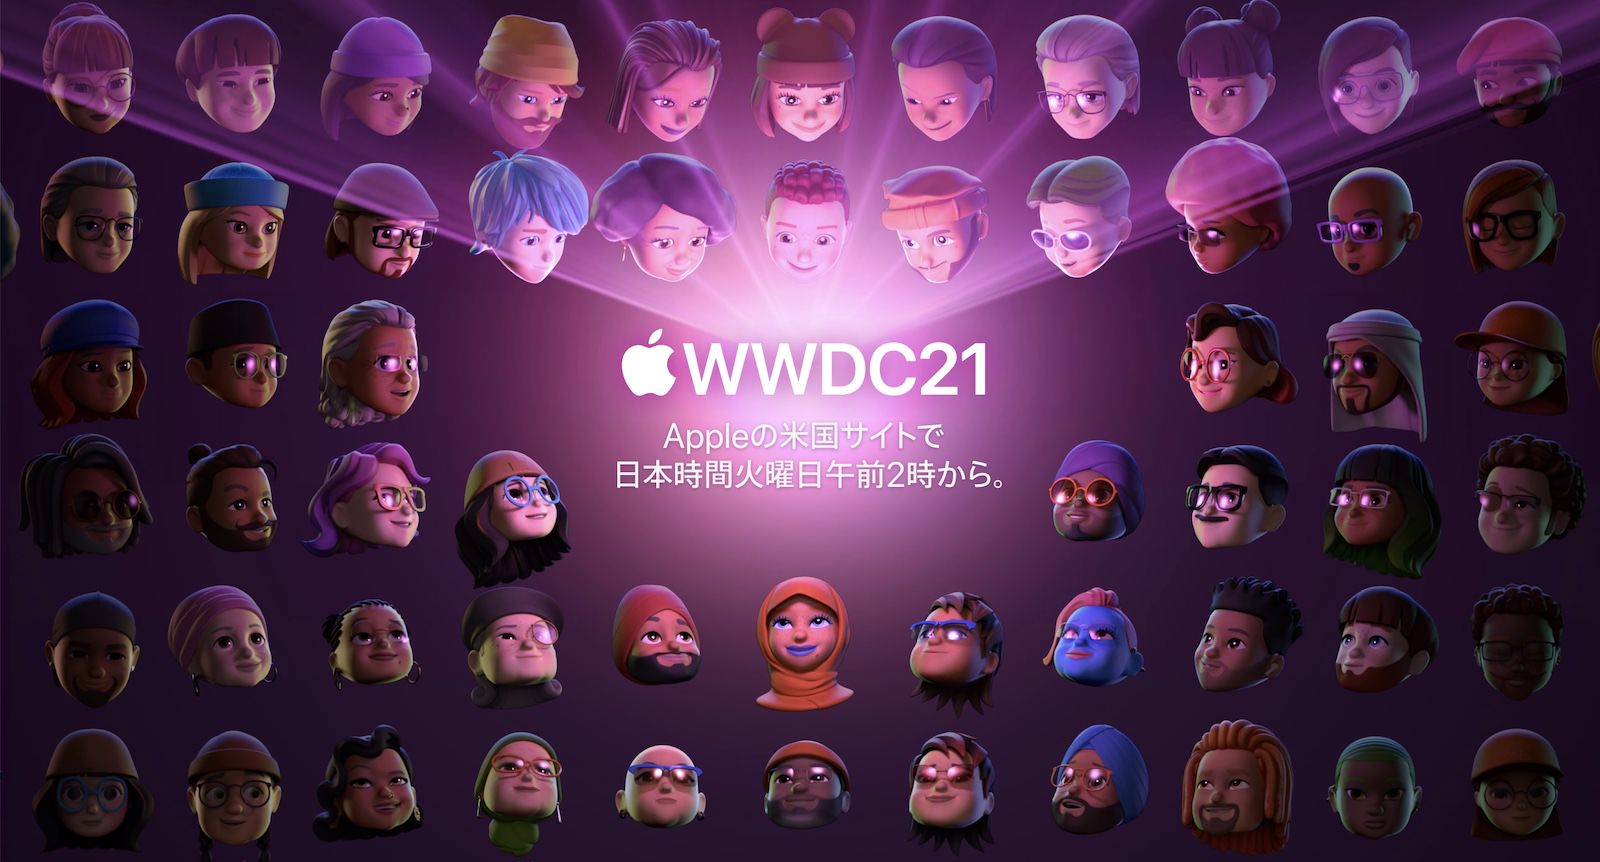 Apple wwdc 2021 official